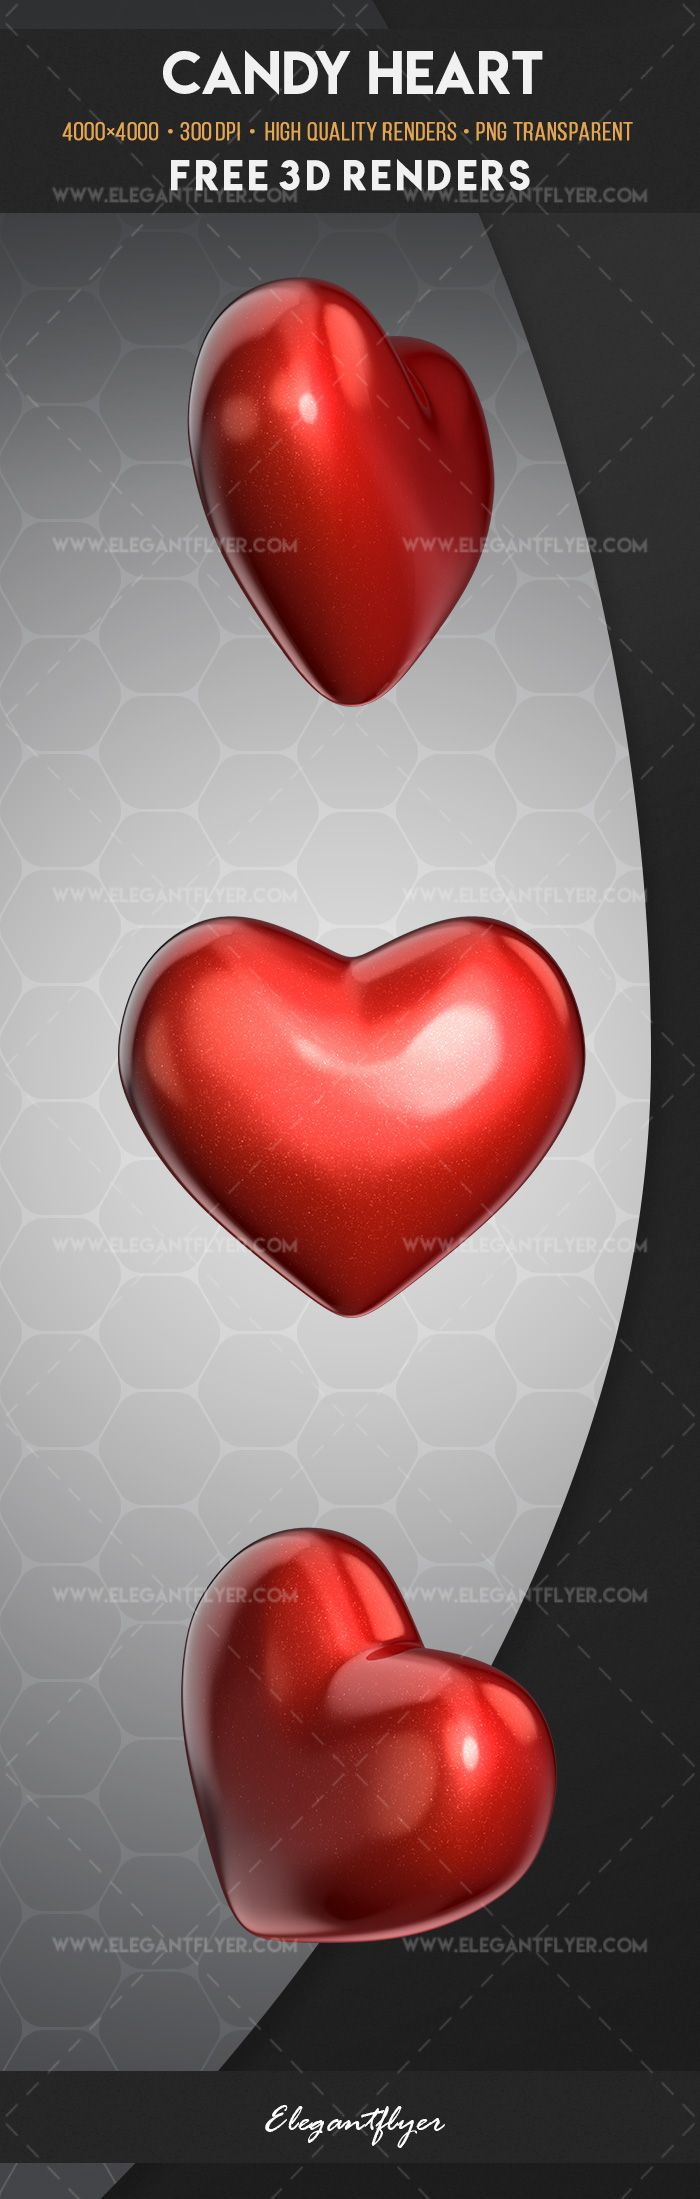 Candy Heart – Free 3d Render Templates